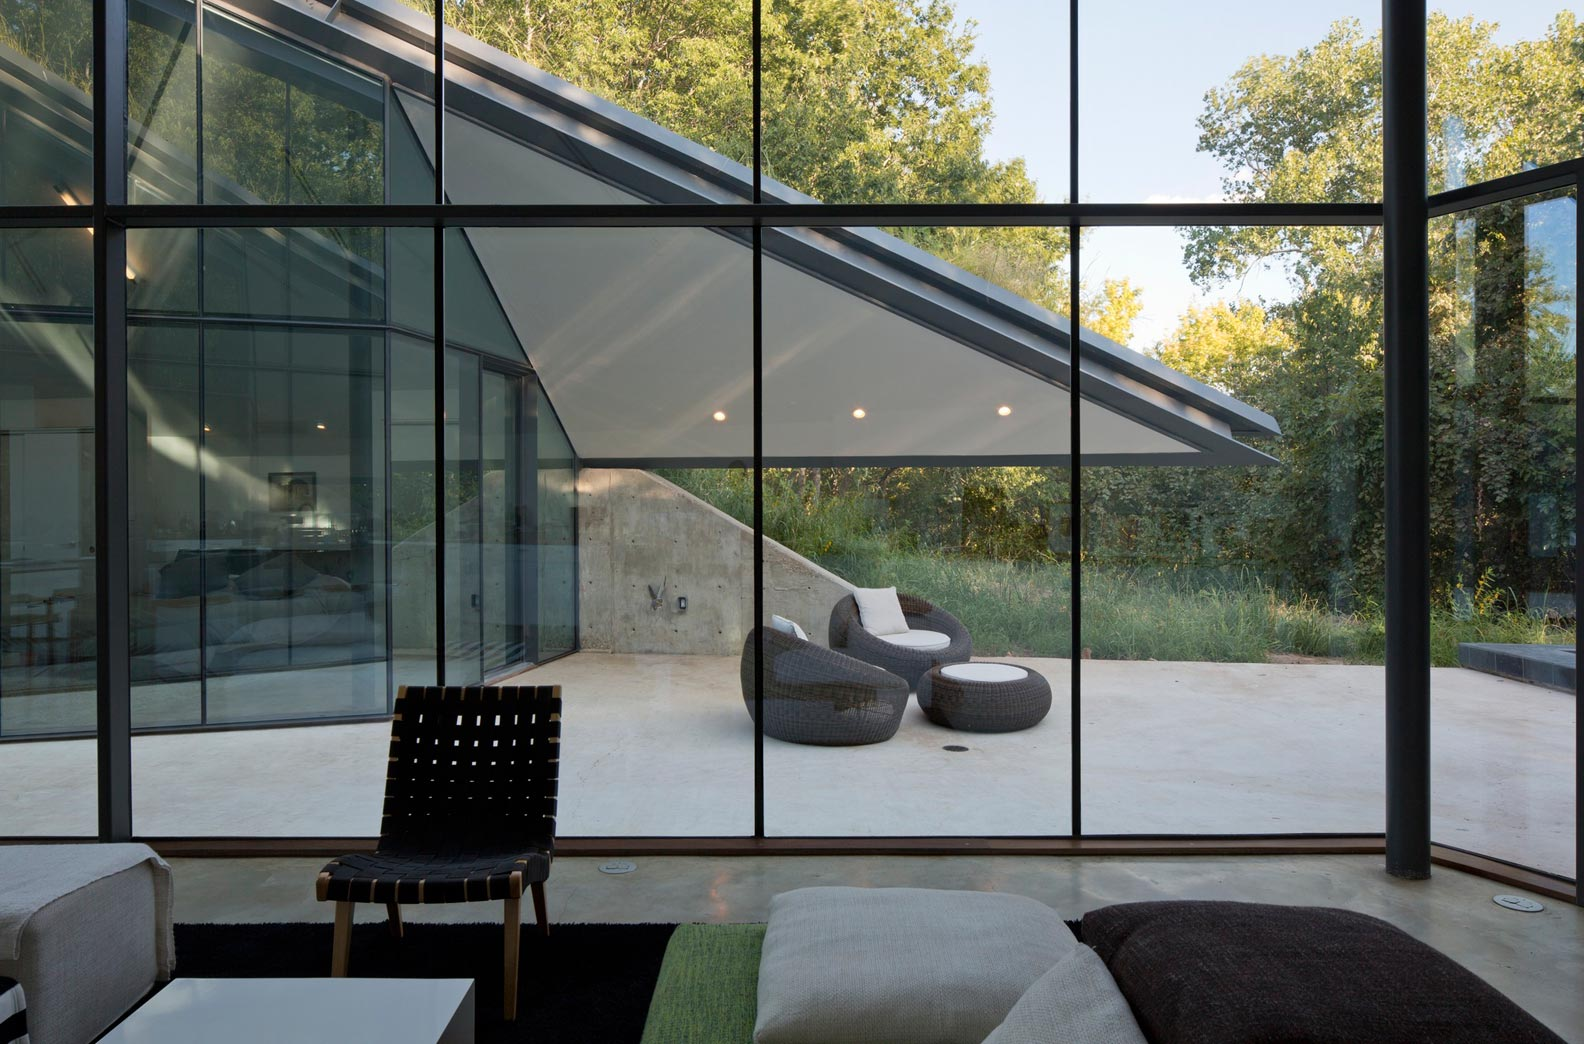 Glass Wall Interior Paneled Glass Walls Of Pit House Outdoor Interior Design